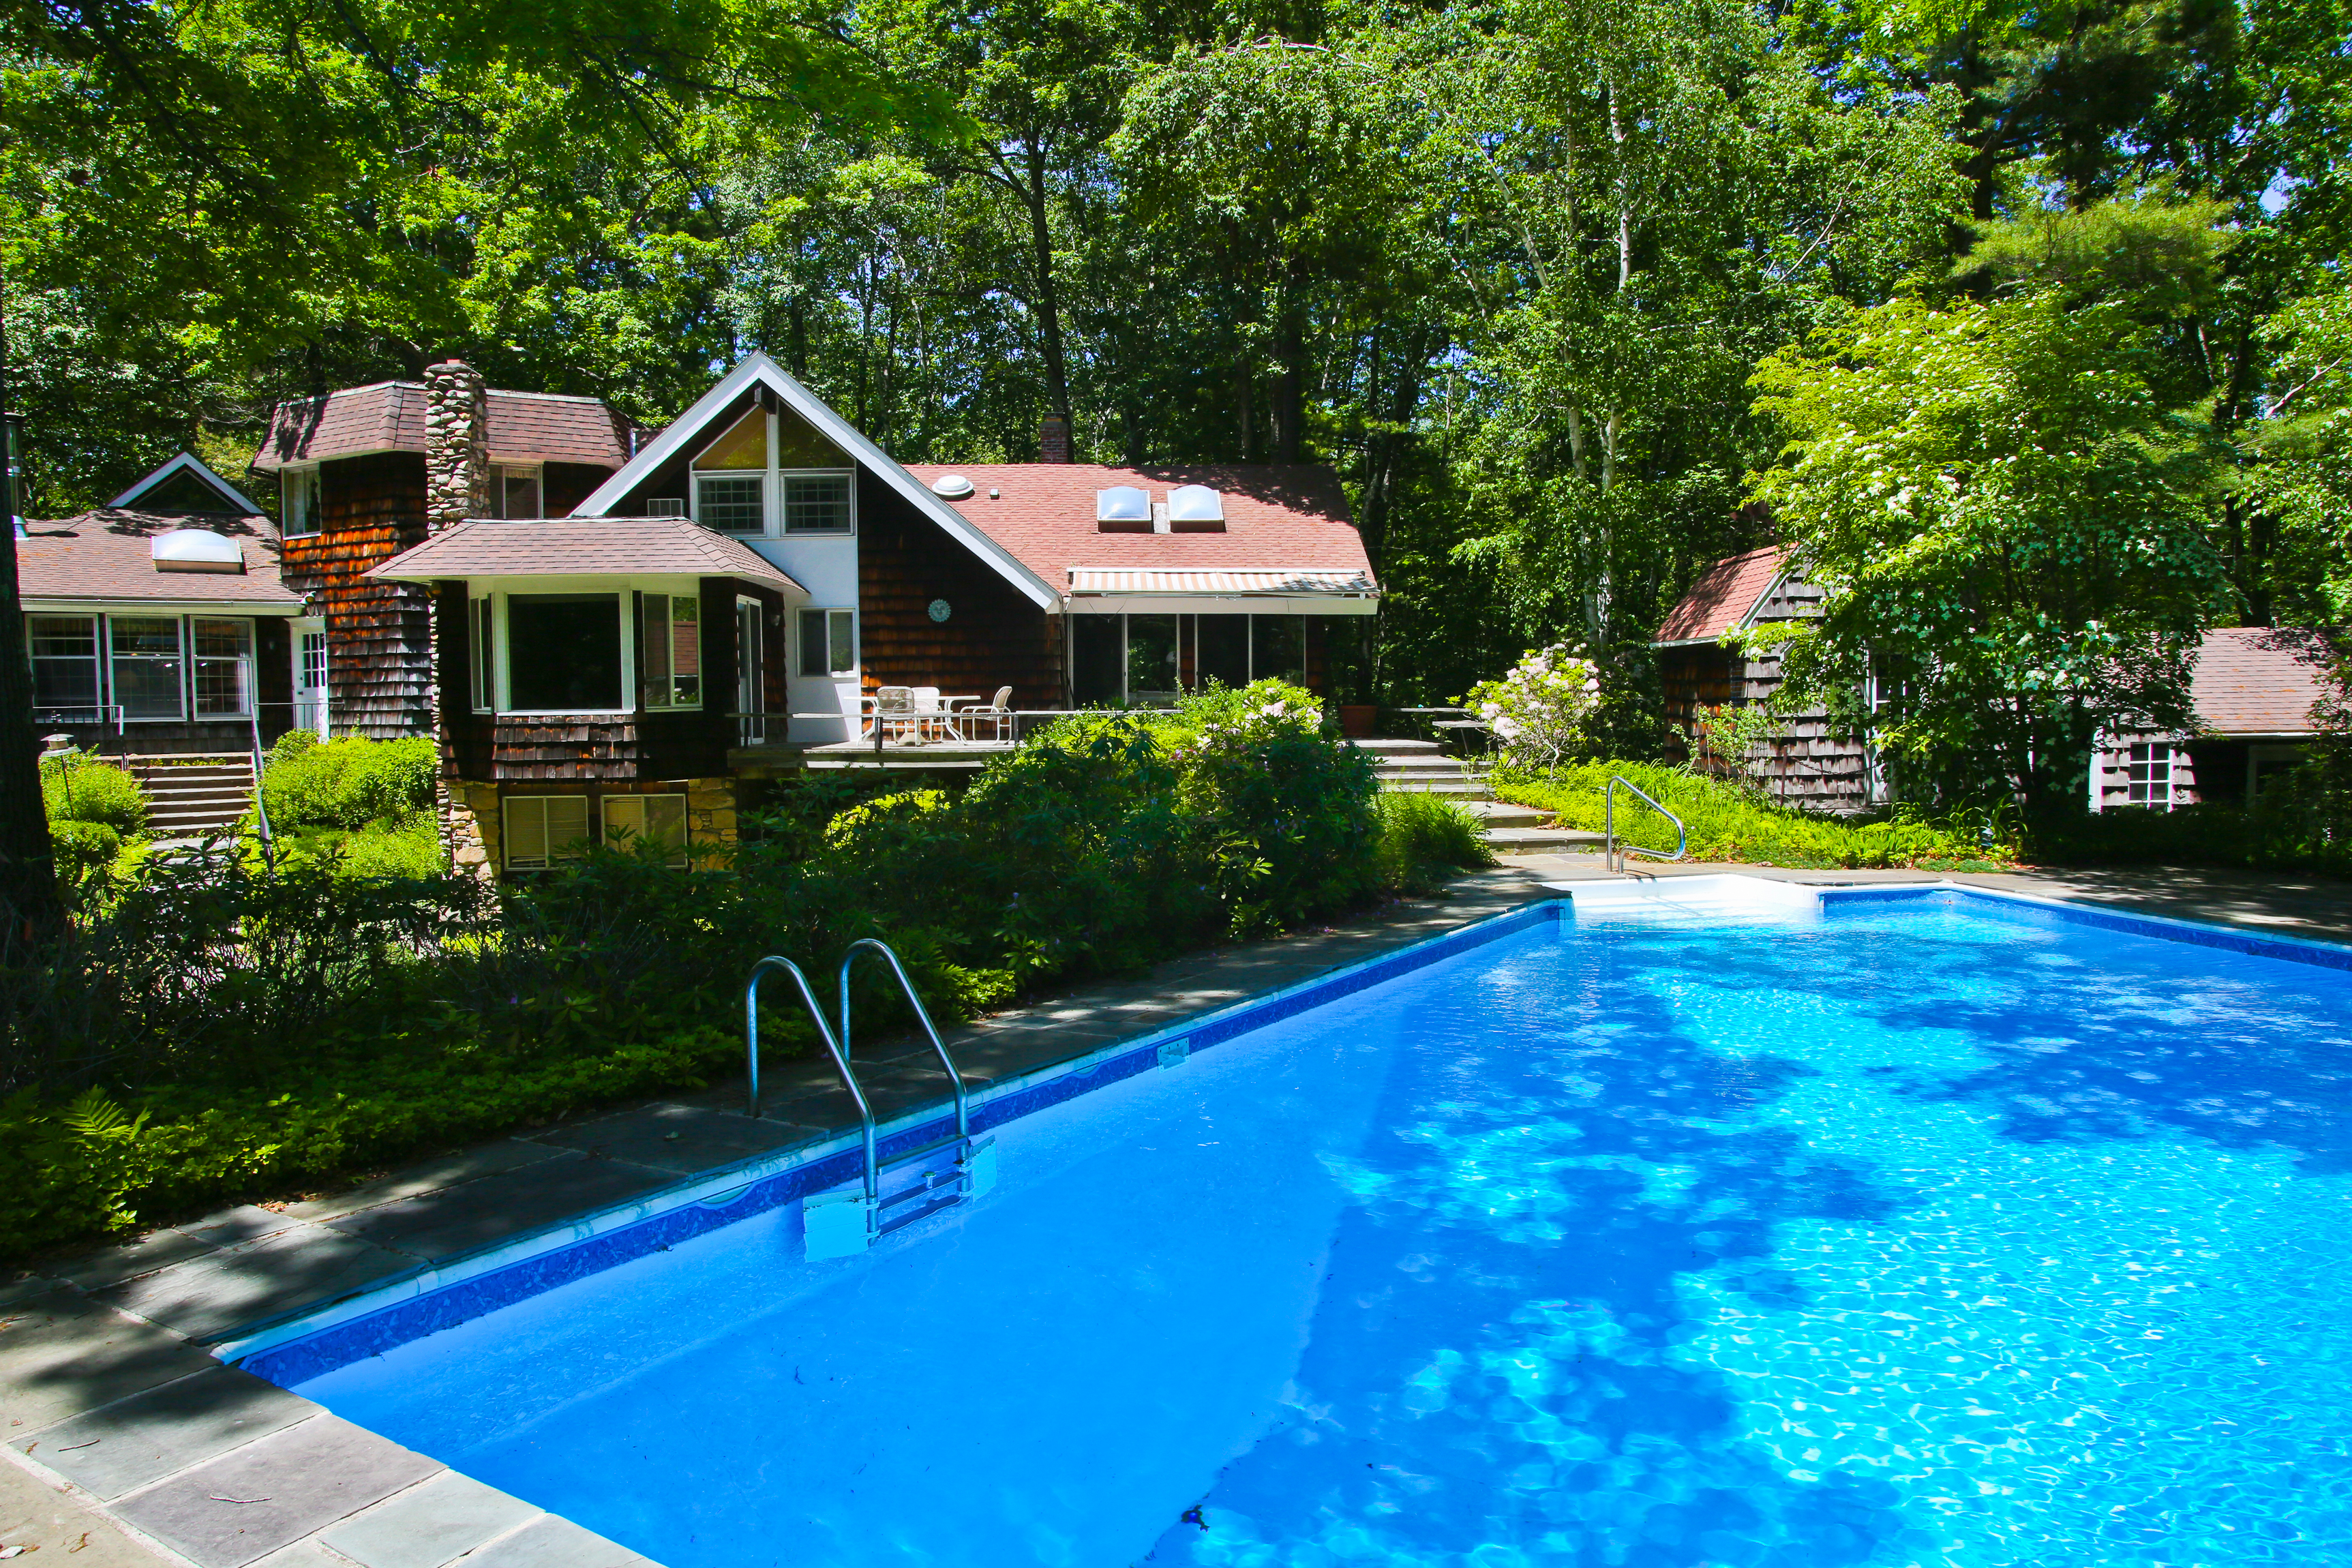 Single Family Home for Sale at Secluded, Comfortable 63-Acre Estate in Great Barrington 14 Monument Valley Rd Great Barrington, Massachusetts, 01230 United States